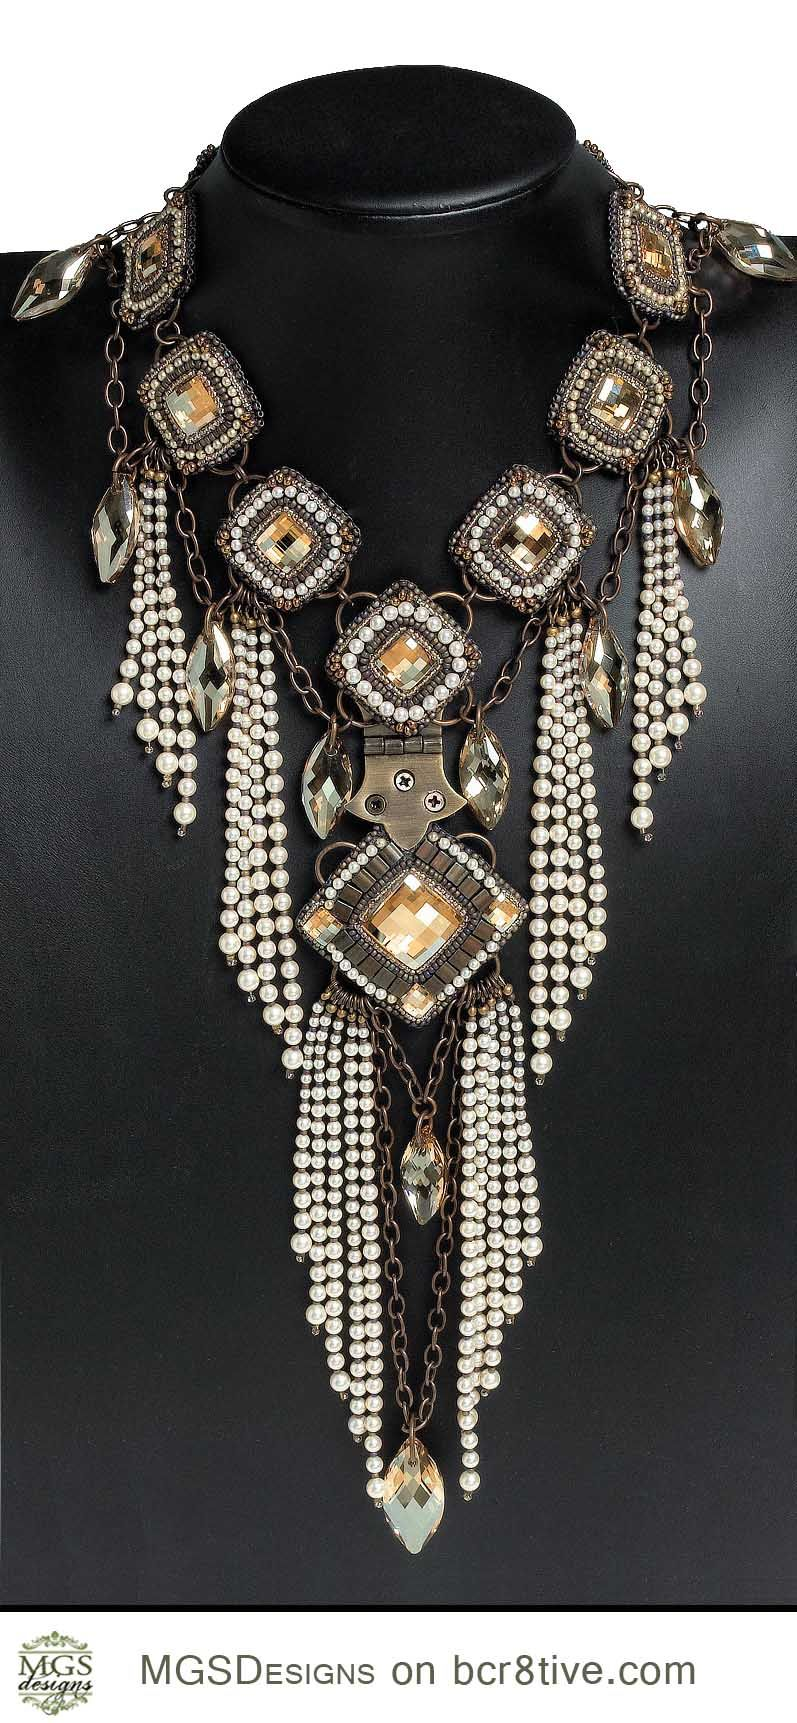 Exceptional Bead Artistry by Melissa Grakowsky Shippee   bcr8tive